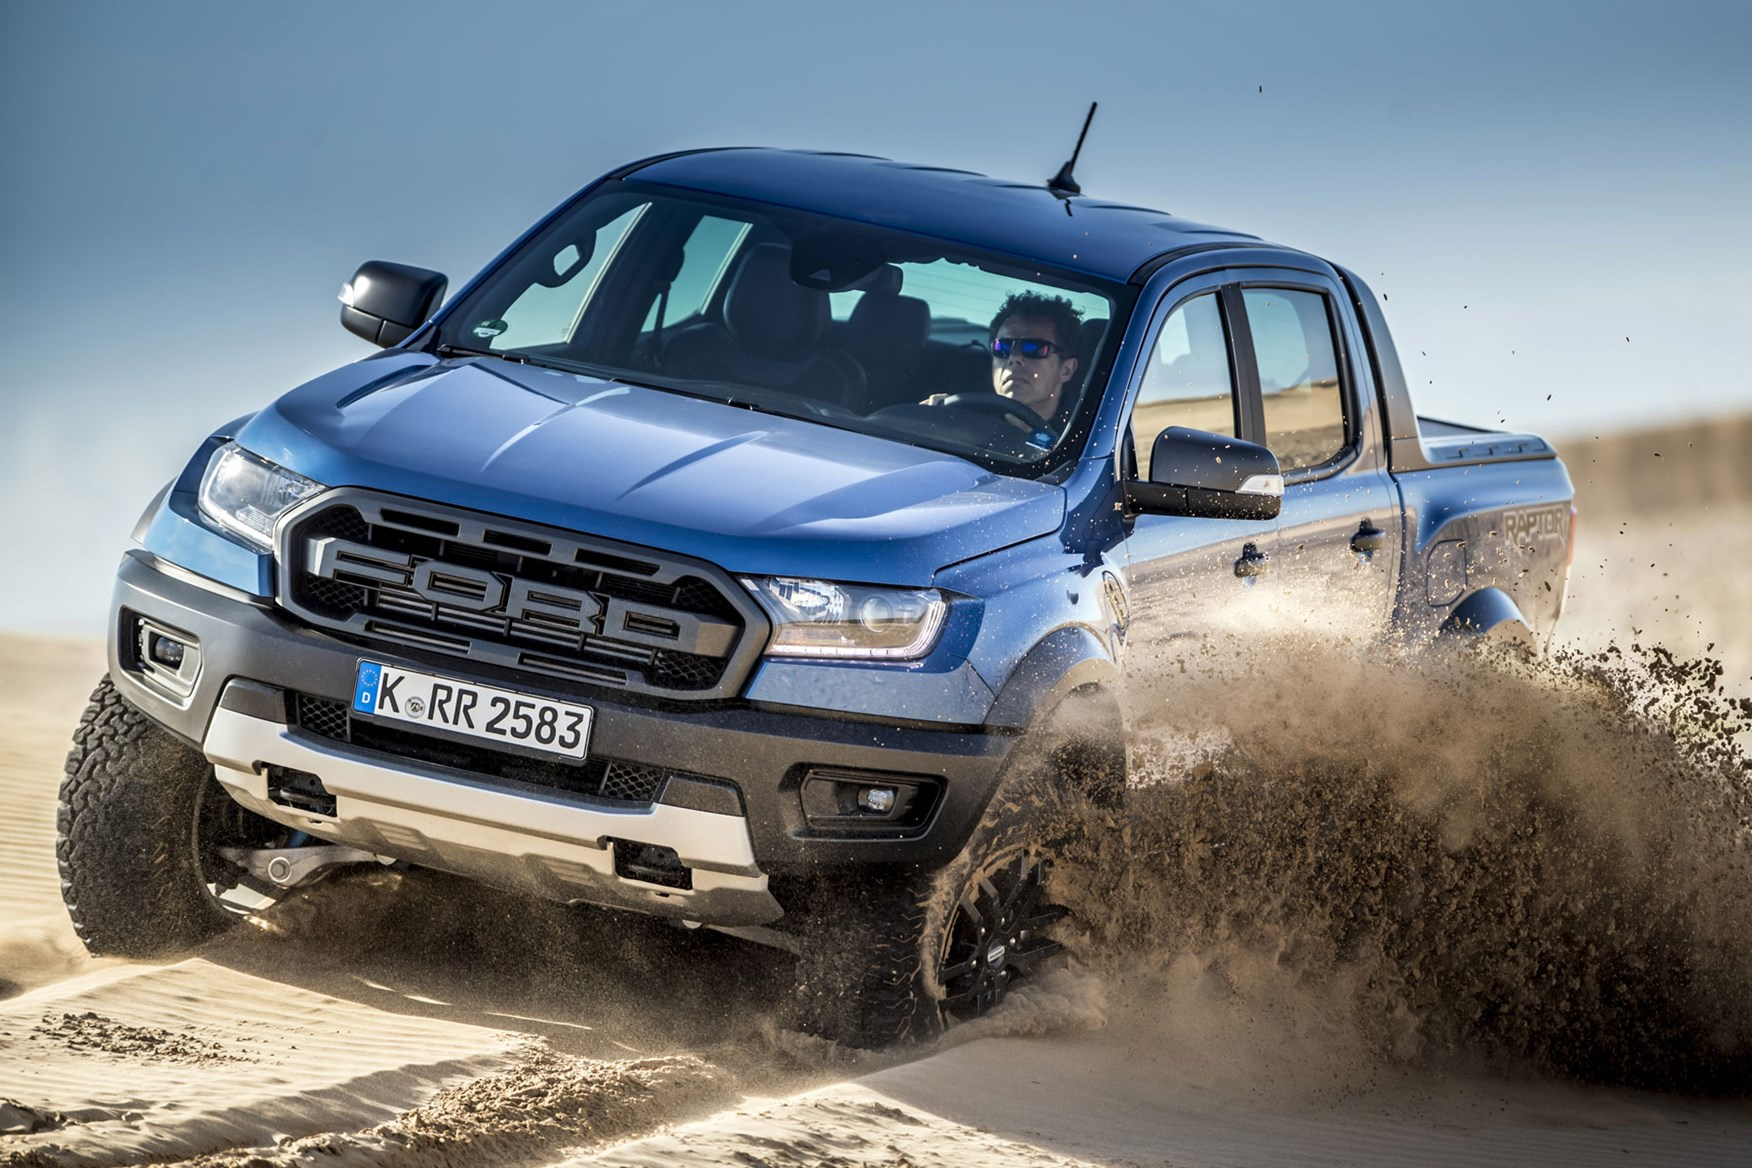 Ford Ranger Raptor review - front view, blue, smashing through sand, 2019